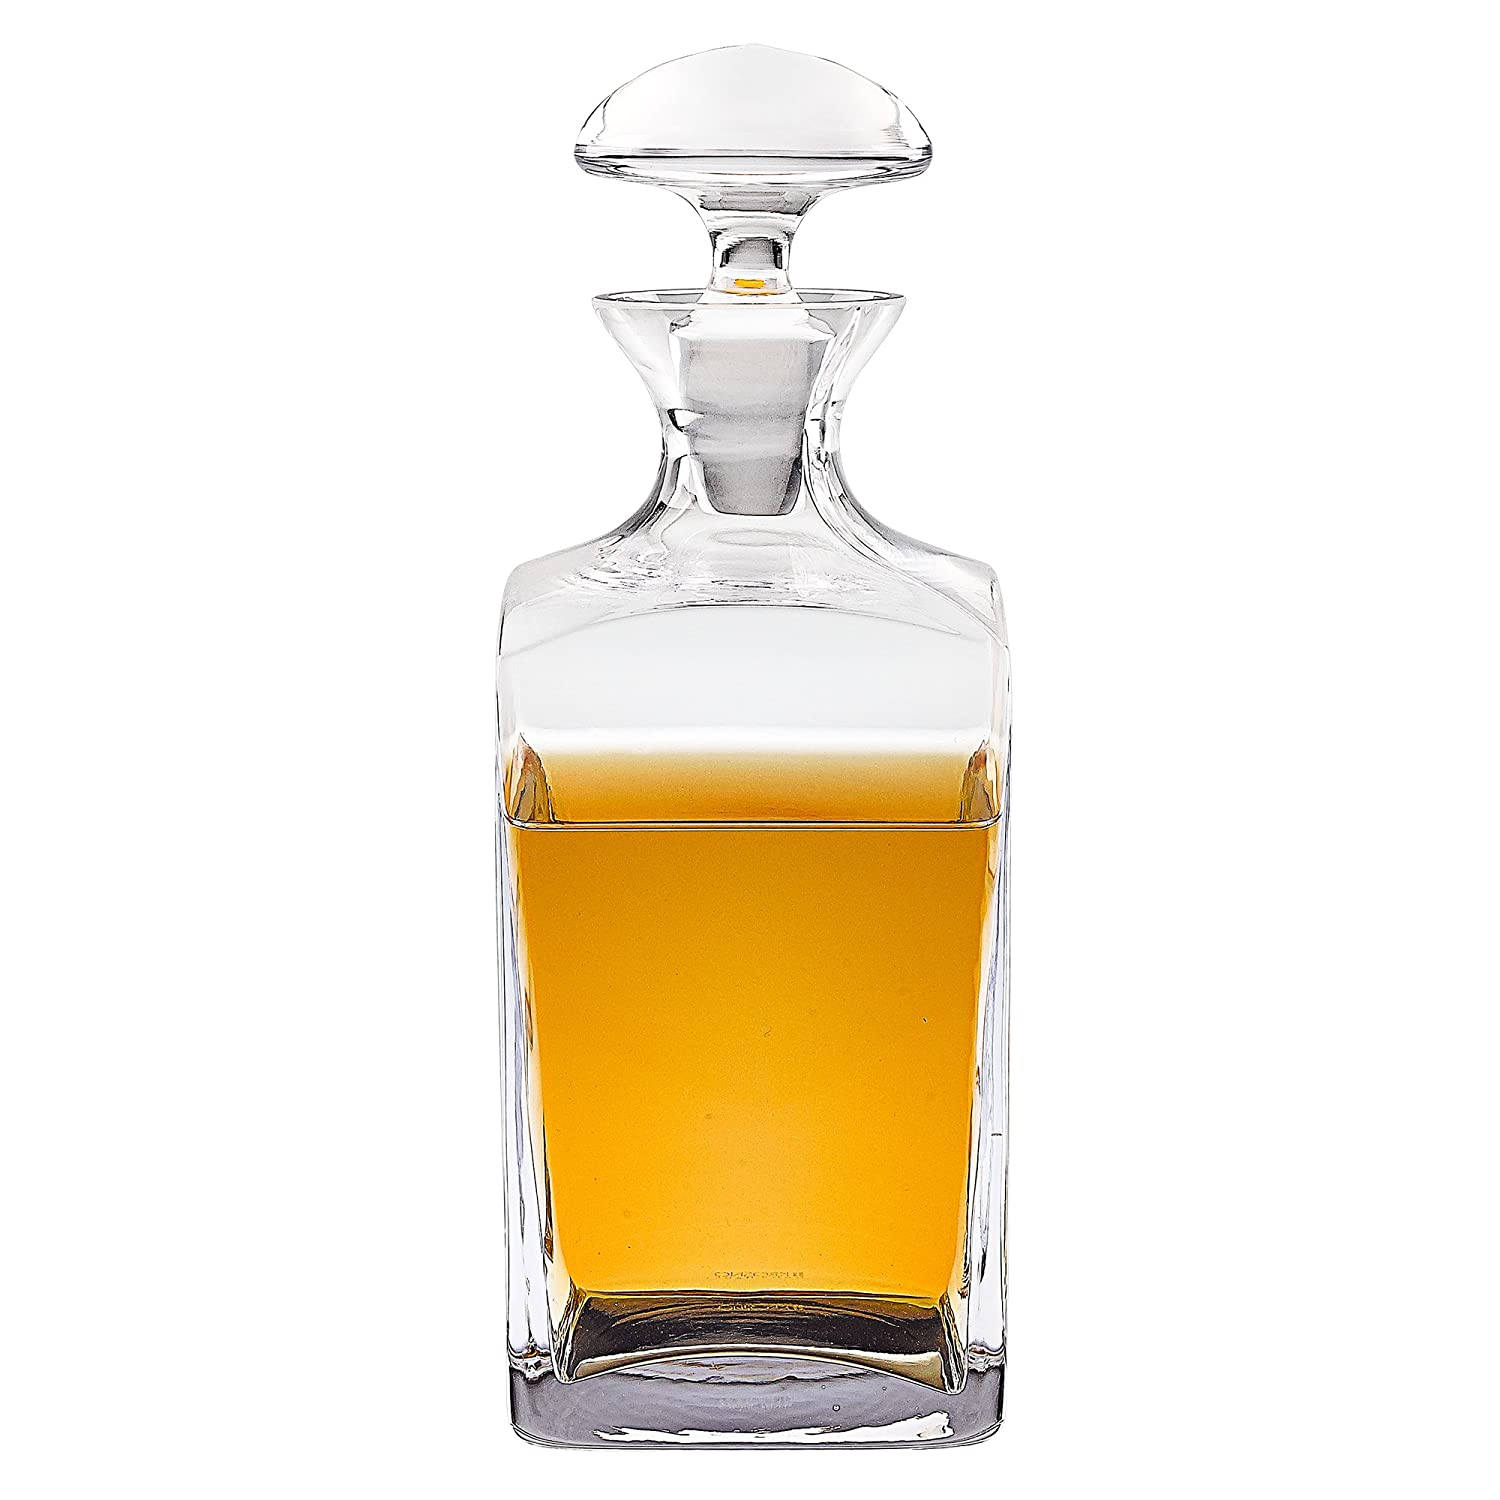 Badash Personalized Andre Square 34oz Crystal Decanter (Personalized 34oz)